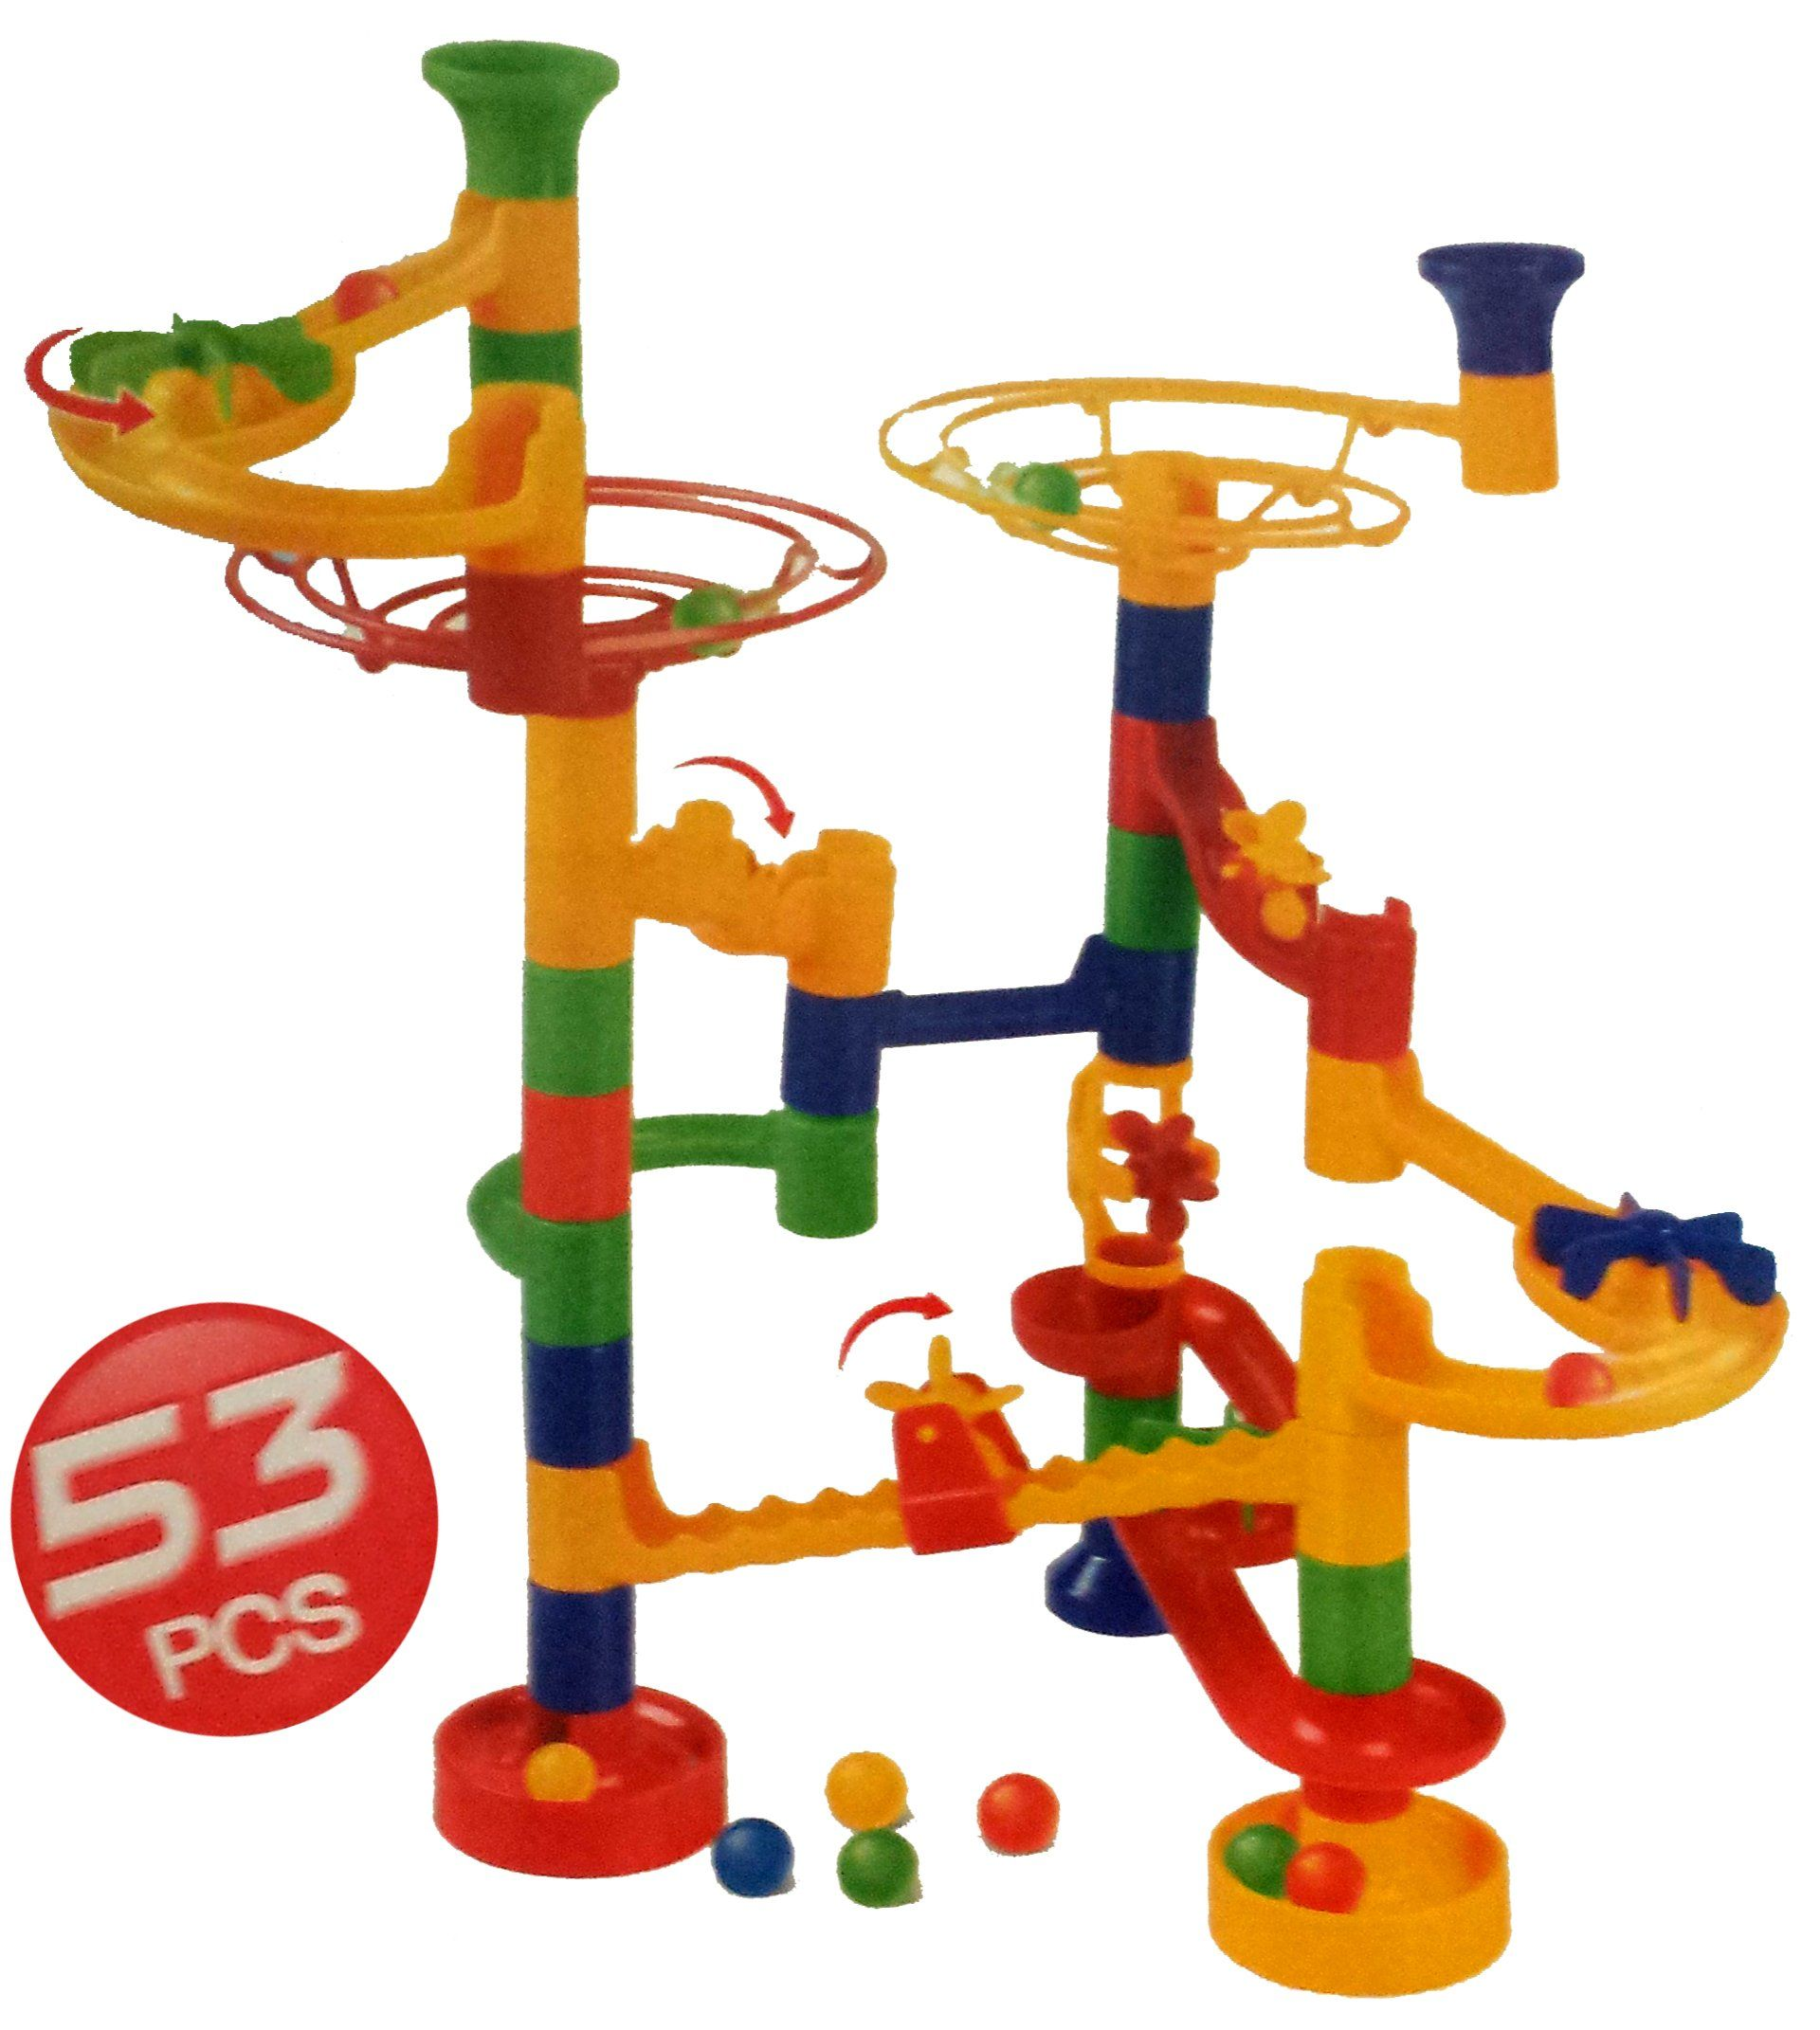 Galt Toys Mega Marble Run Amazon.co.uk Toys & Games